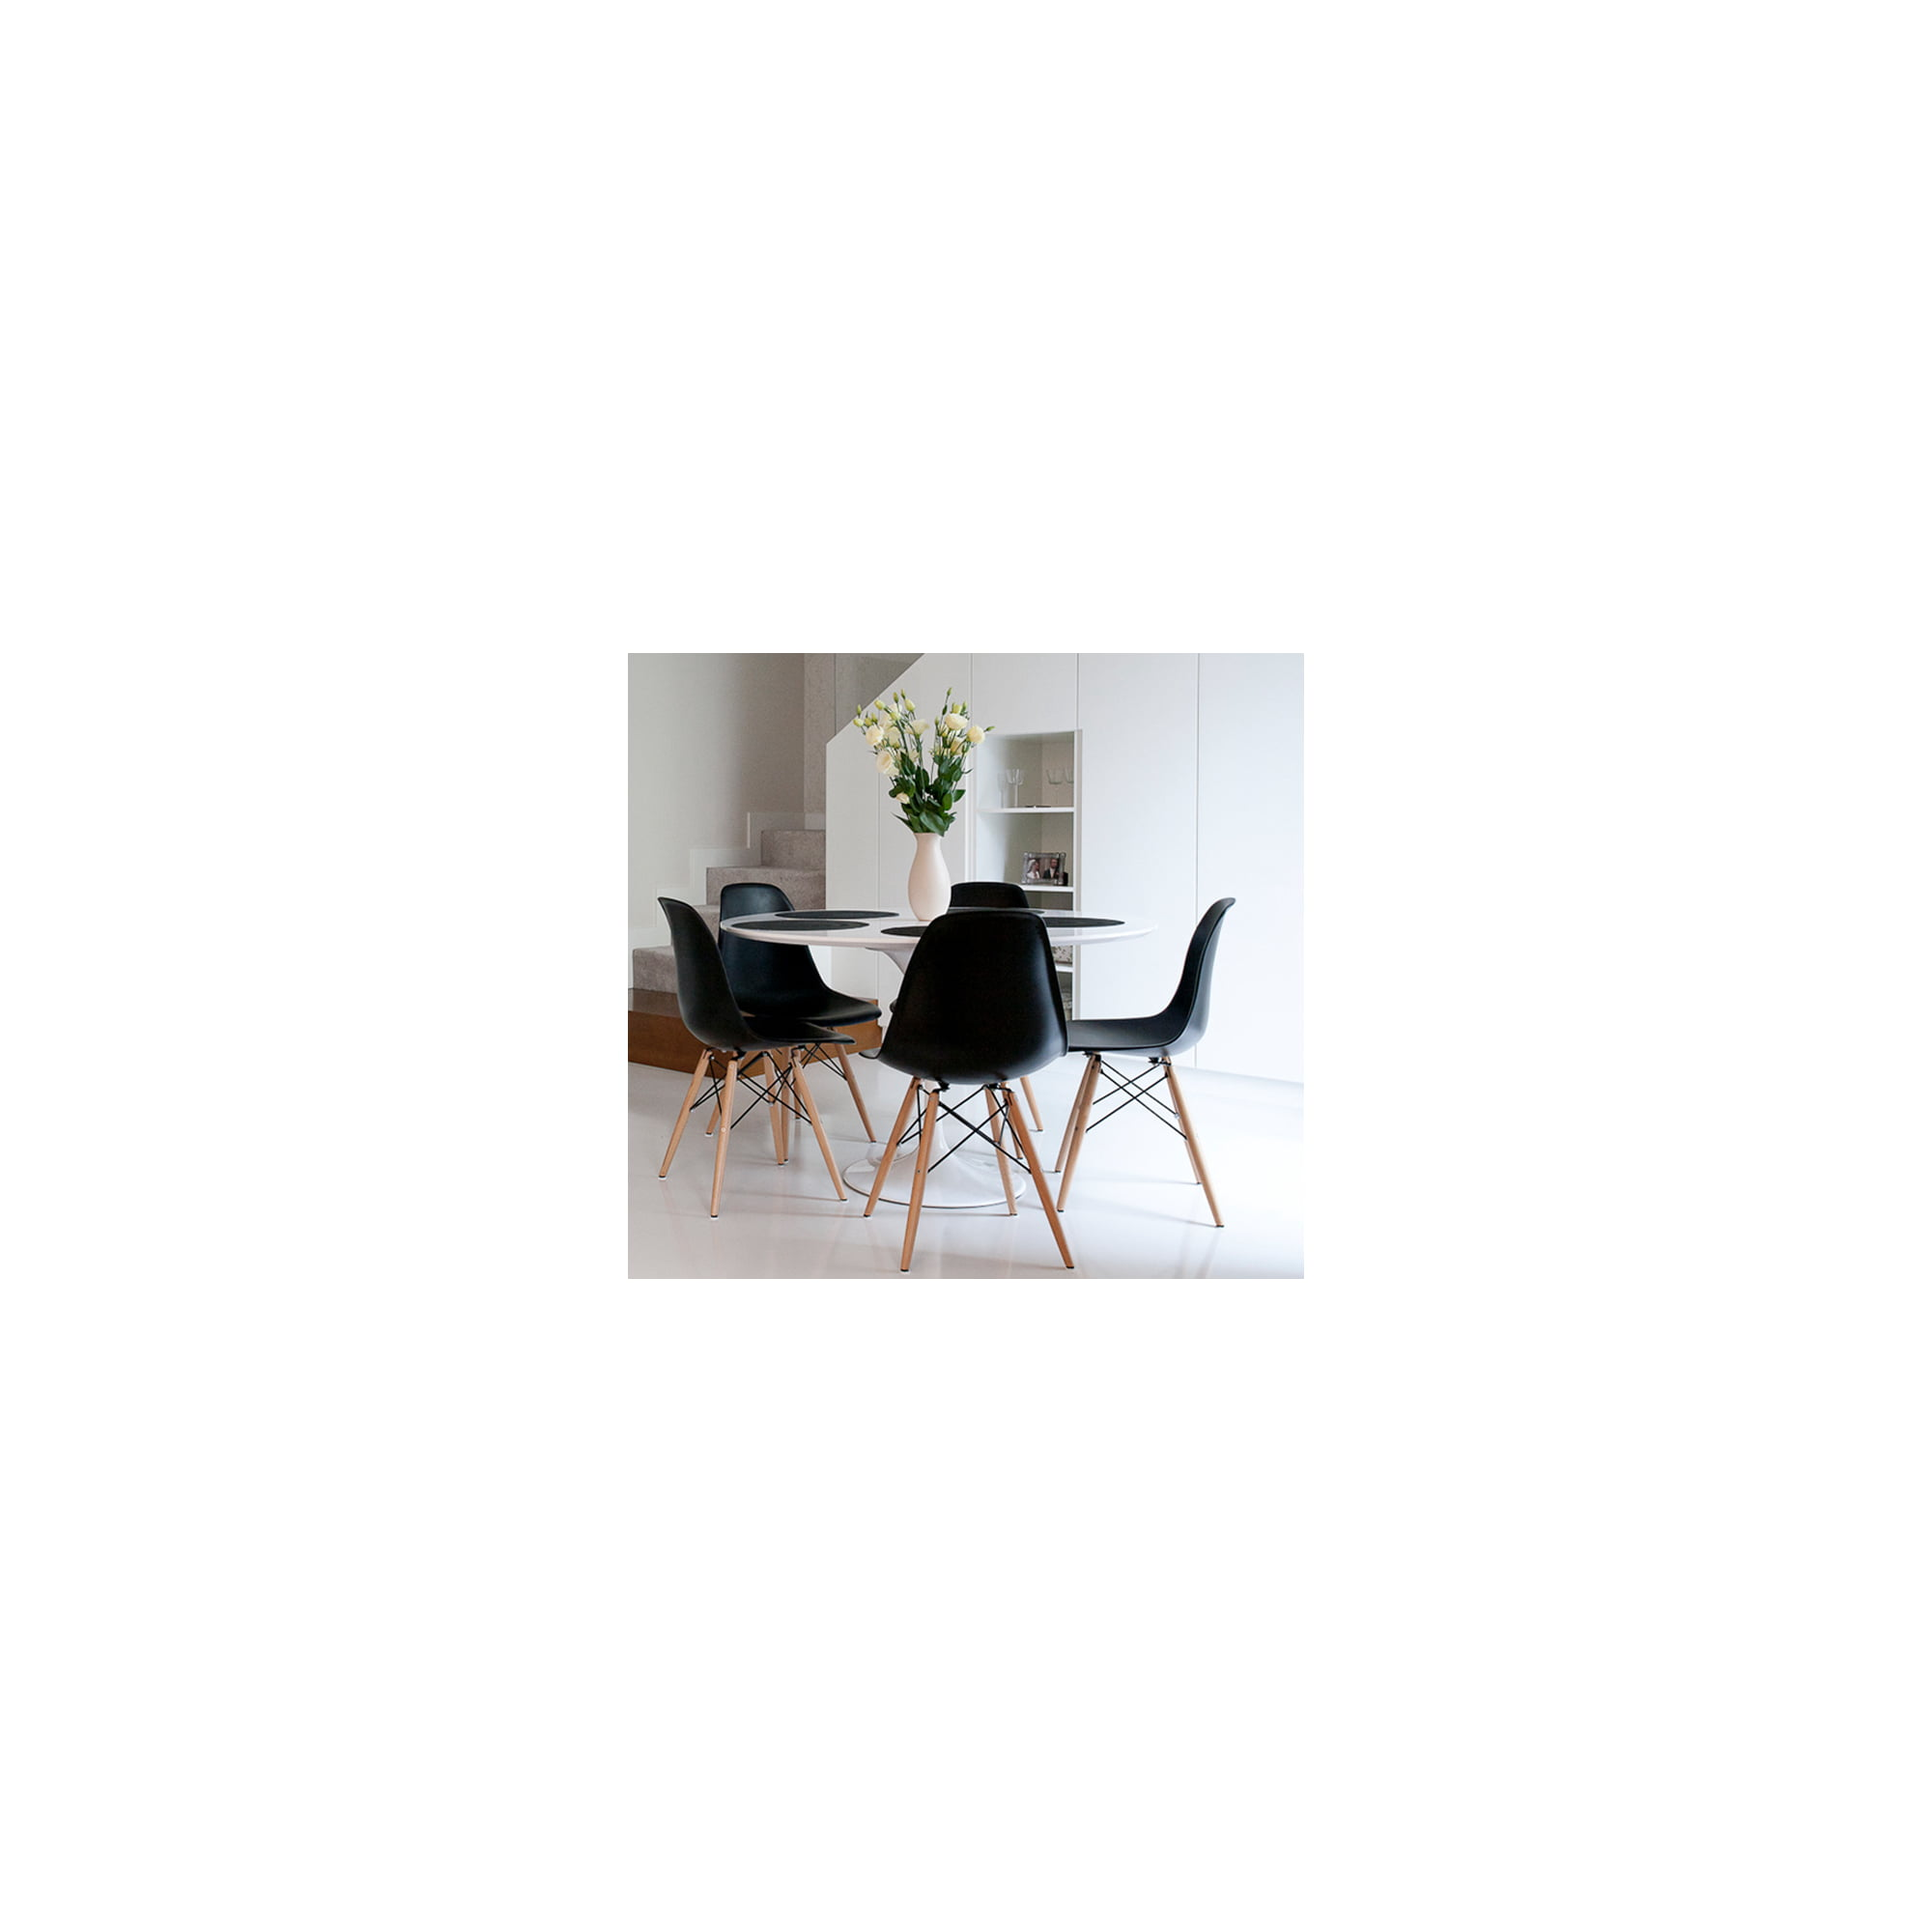 Set of Six (12) Eames Style Side Chair with Natural Wood Legs Eiffel Dining  Room Chair Office Chair (GRAY)